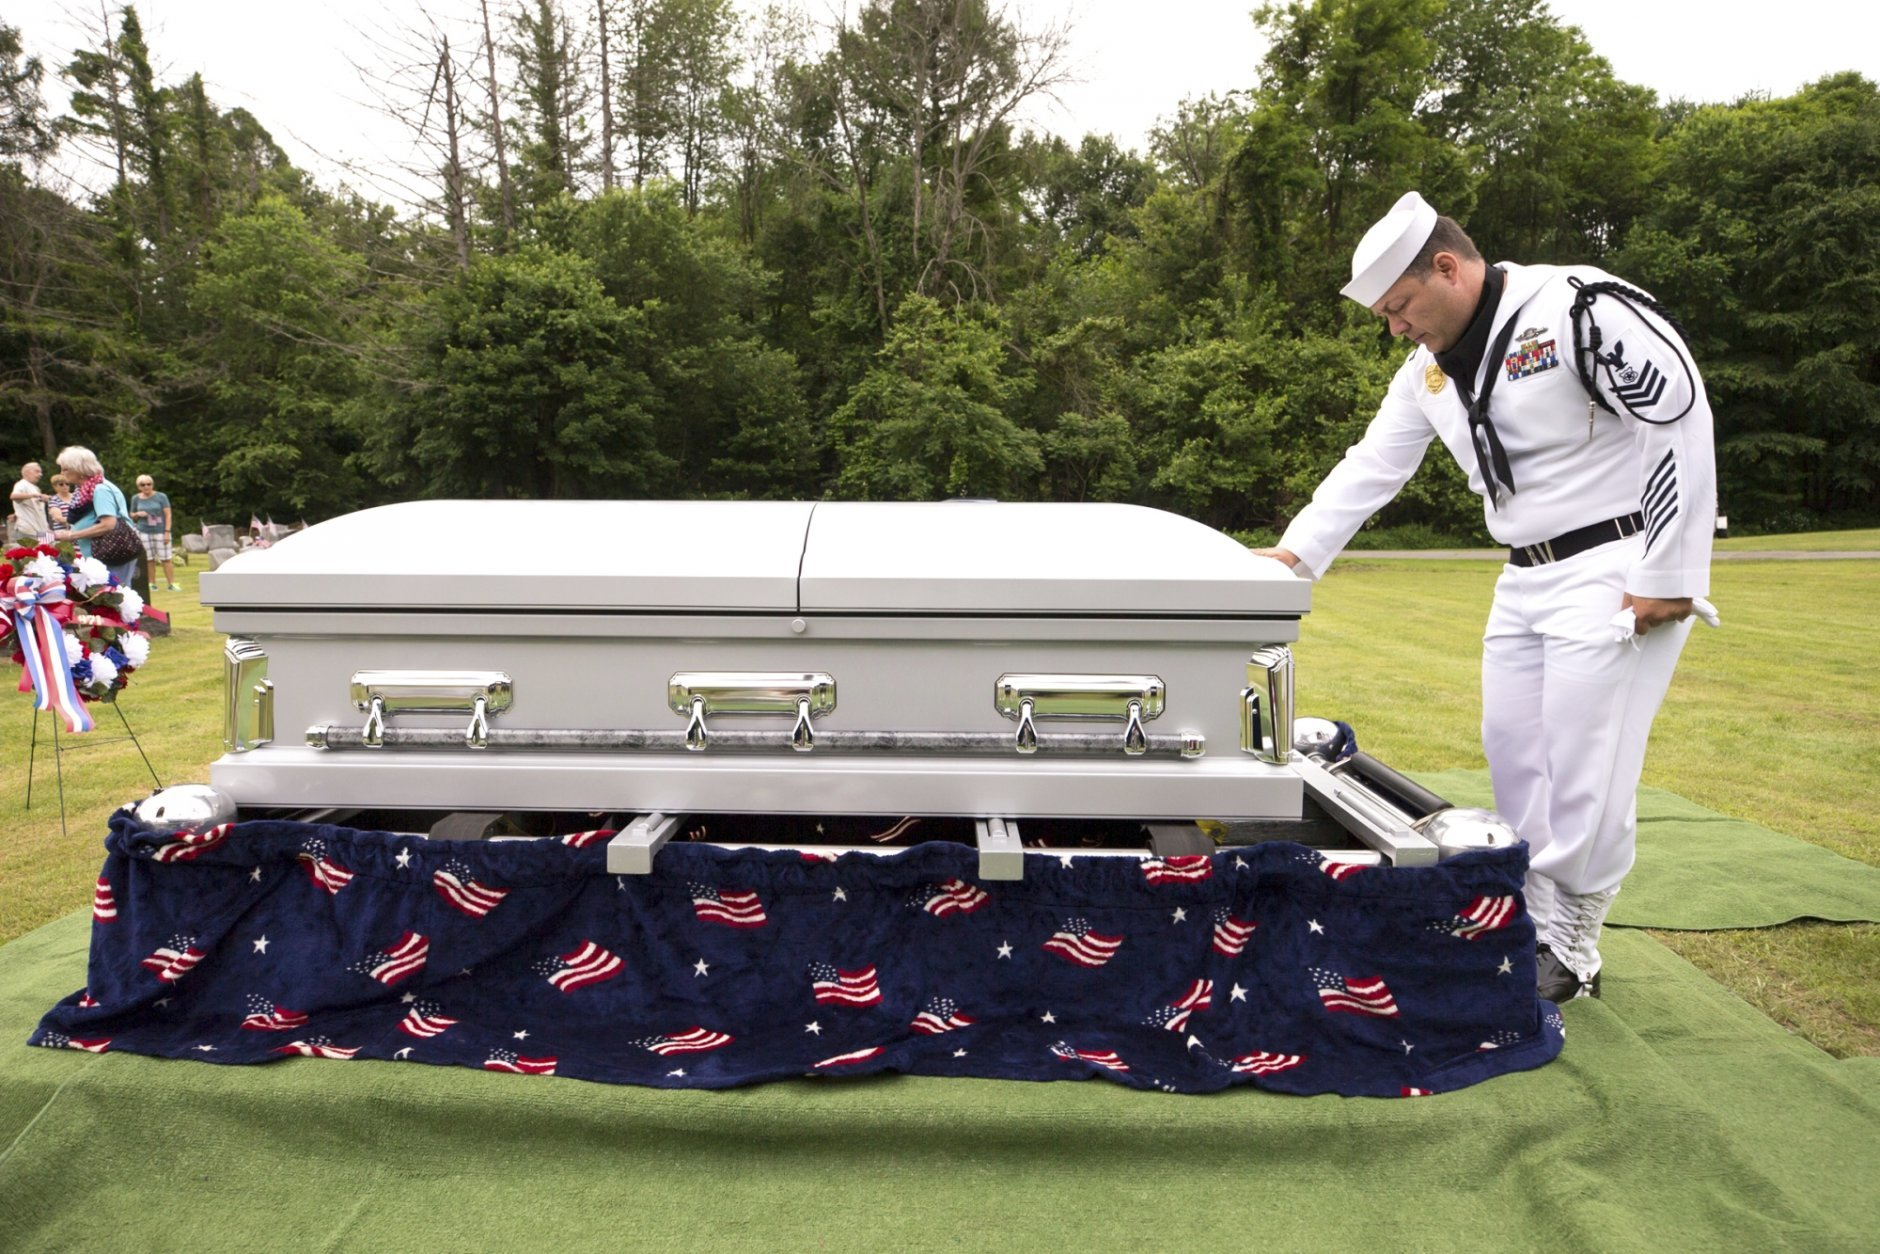 FILE  - In this June 9, 2018, file photo, U.S. Navy Master at Arms First Class Robert Linke, a Los Angeles native stationed at Naval Weapons Station Earle in Colts Neck, N.J., pauses at the casket of U.S. Navy Seaman 1st Class Edward Slapikas, a Newport Township, Pa., native killed while serving aboard the USS Oklahoma in the attack on Pearl Harbor in Dec. 1941, at St. Mary's Cemetery in Nanticoke, Pa. Slapikas' remains were identified earlier this year and returned to Luzerne County for burial 77 years after his death.  (Christopher Dolan/The Citizens' Voice via AP, File)